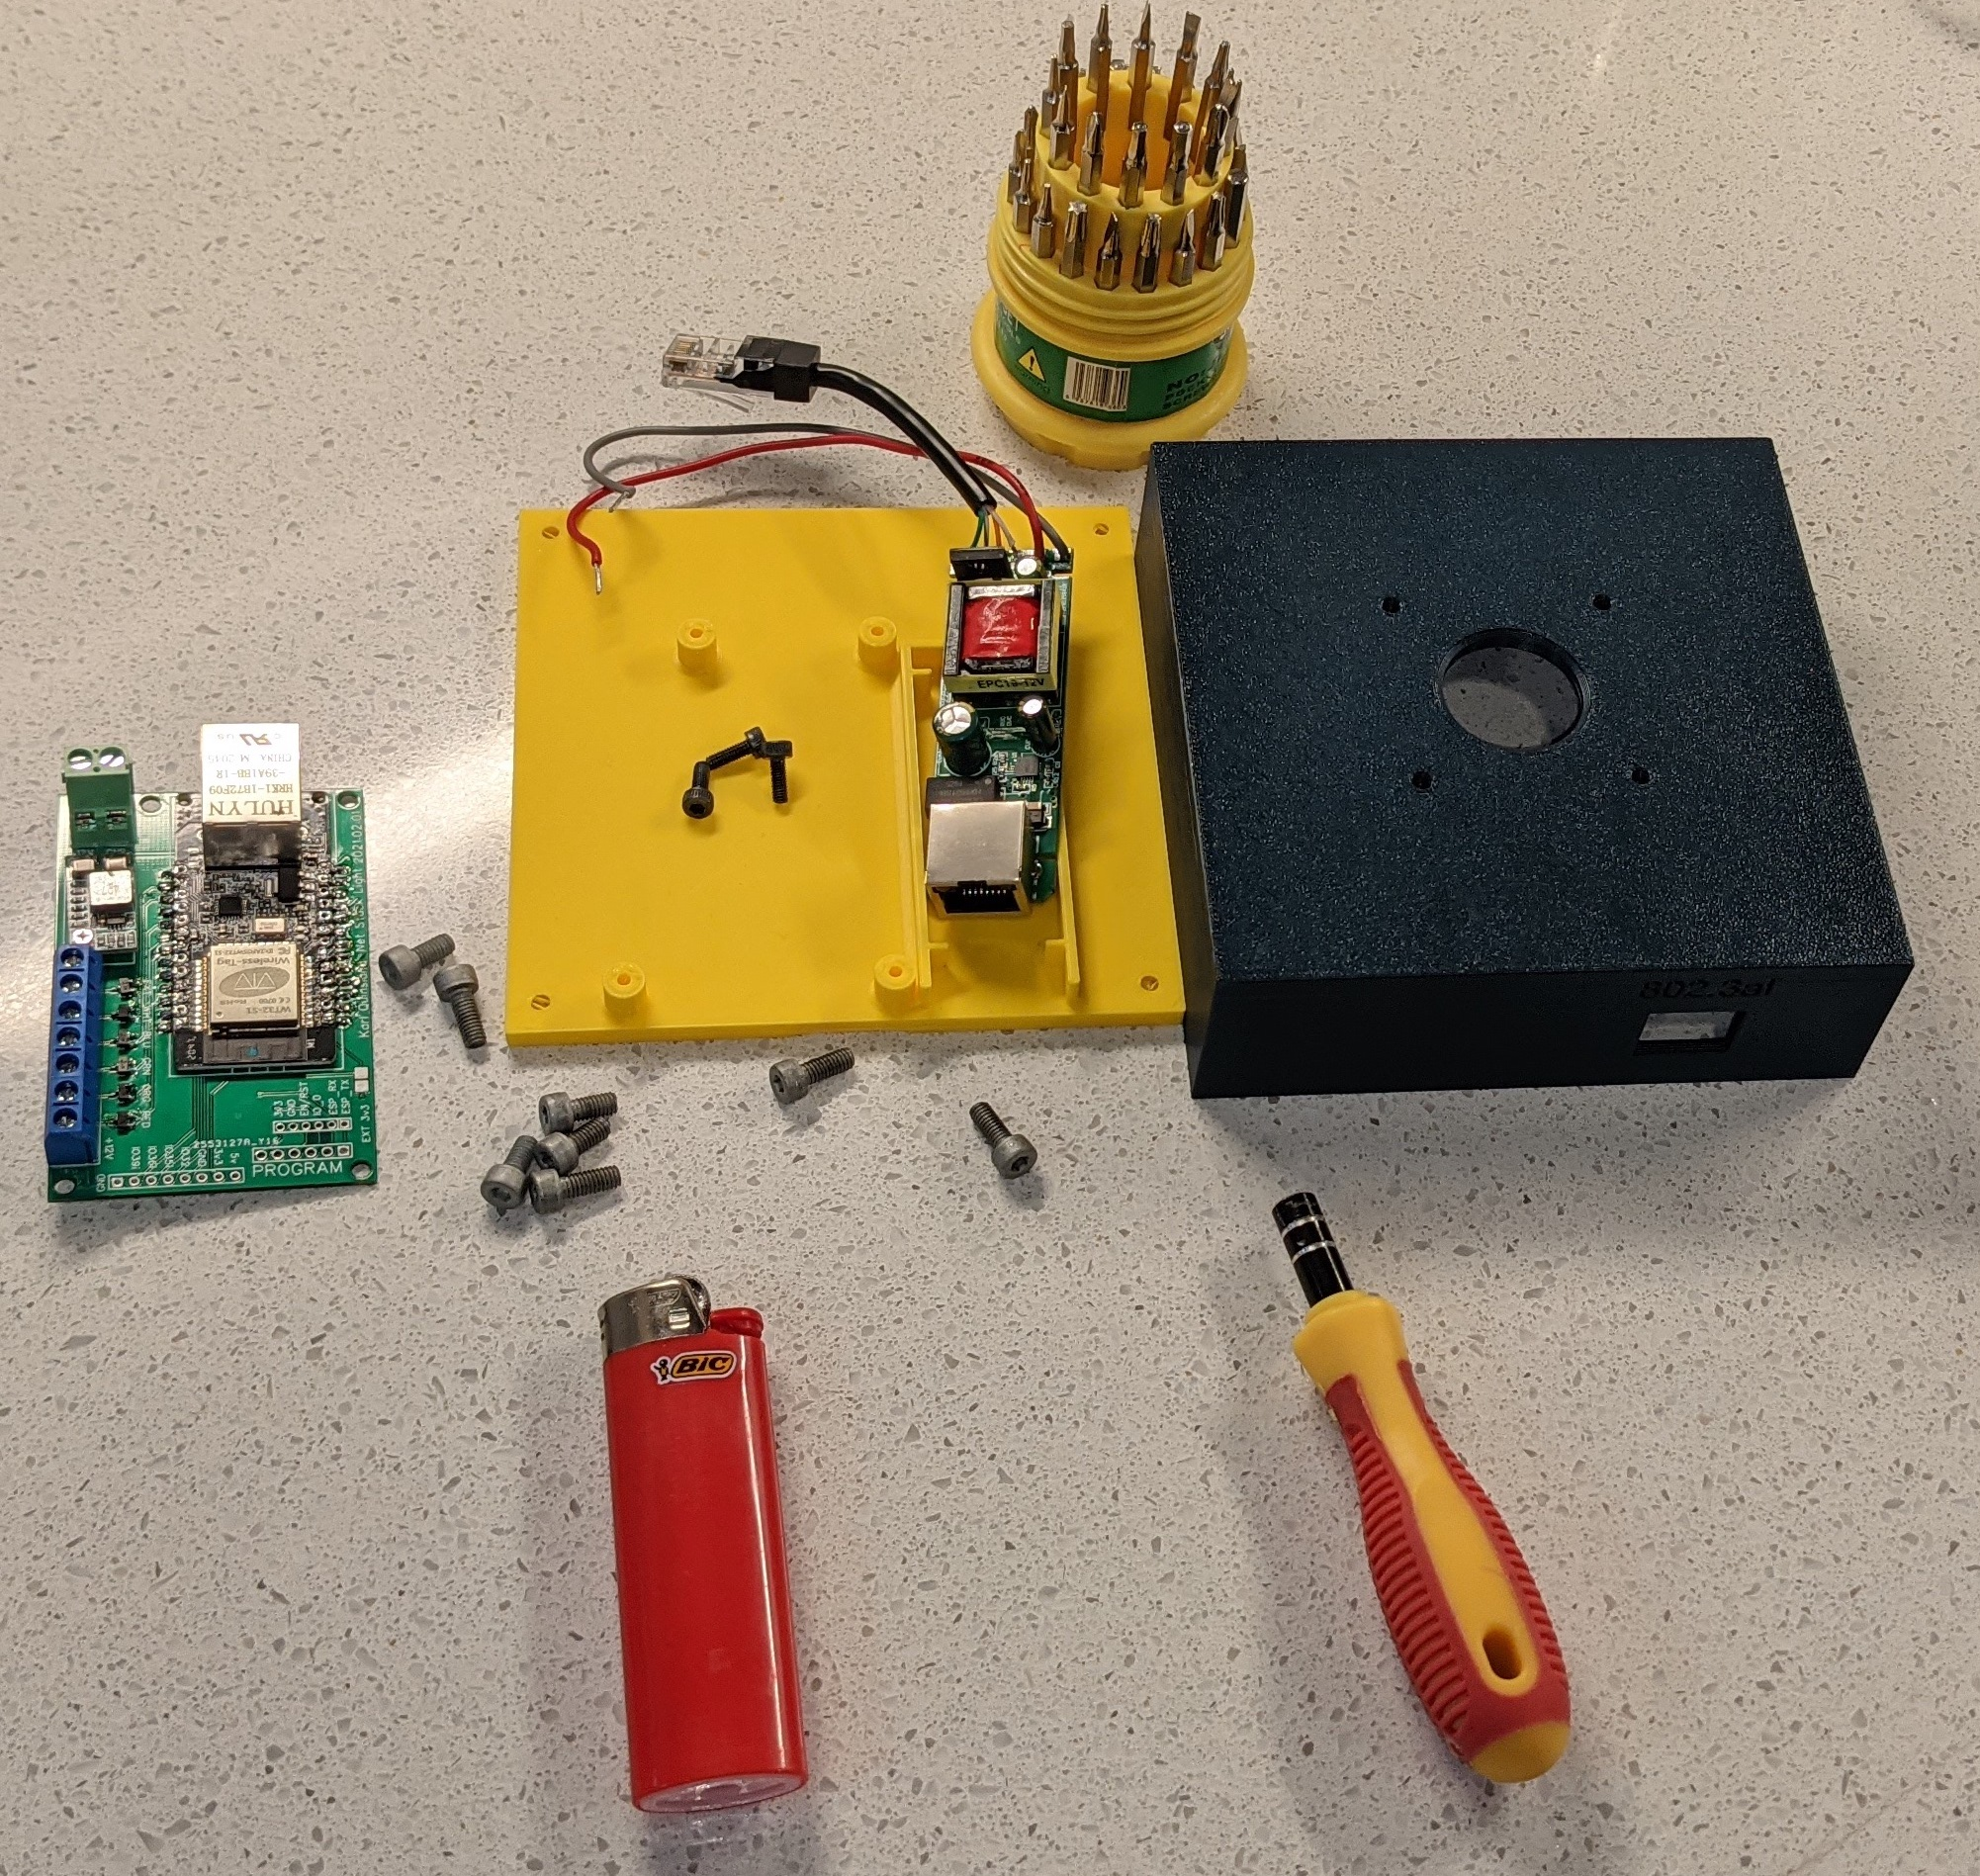 Picture showing some of the components and tools used in assembly.